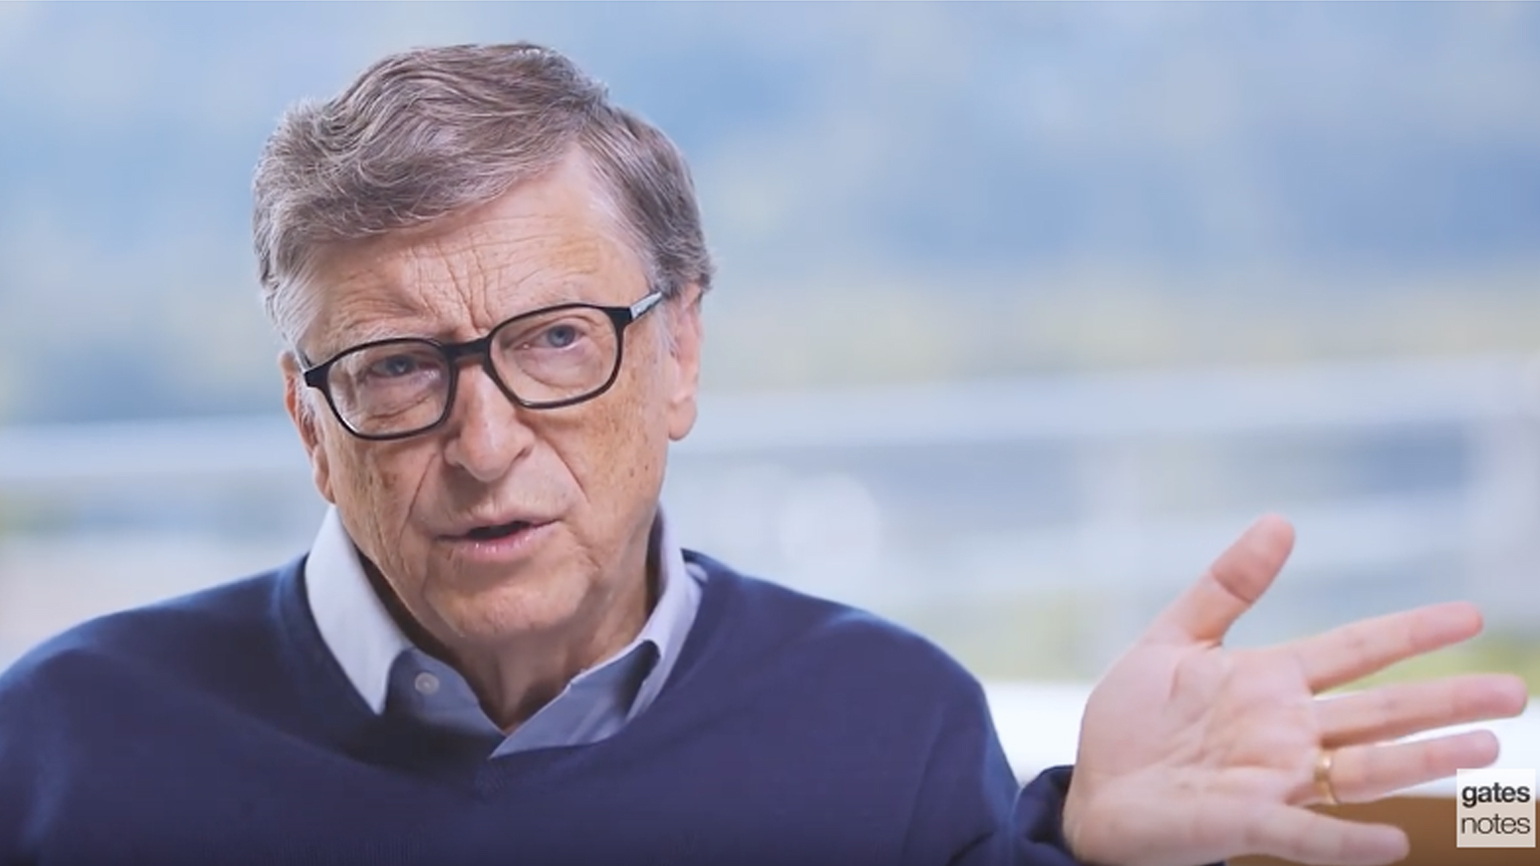 Billionaire and philanthropist Bill Gates discusses his plans on funding Alzheimer's research